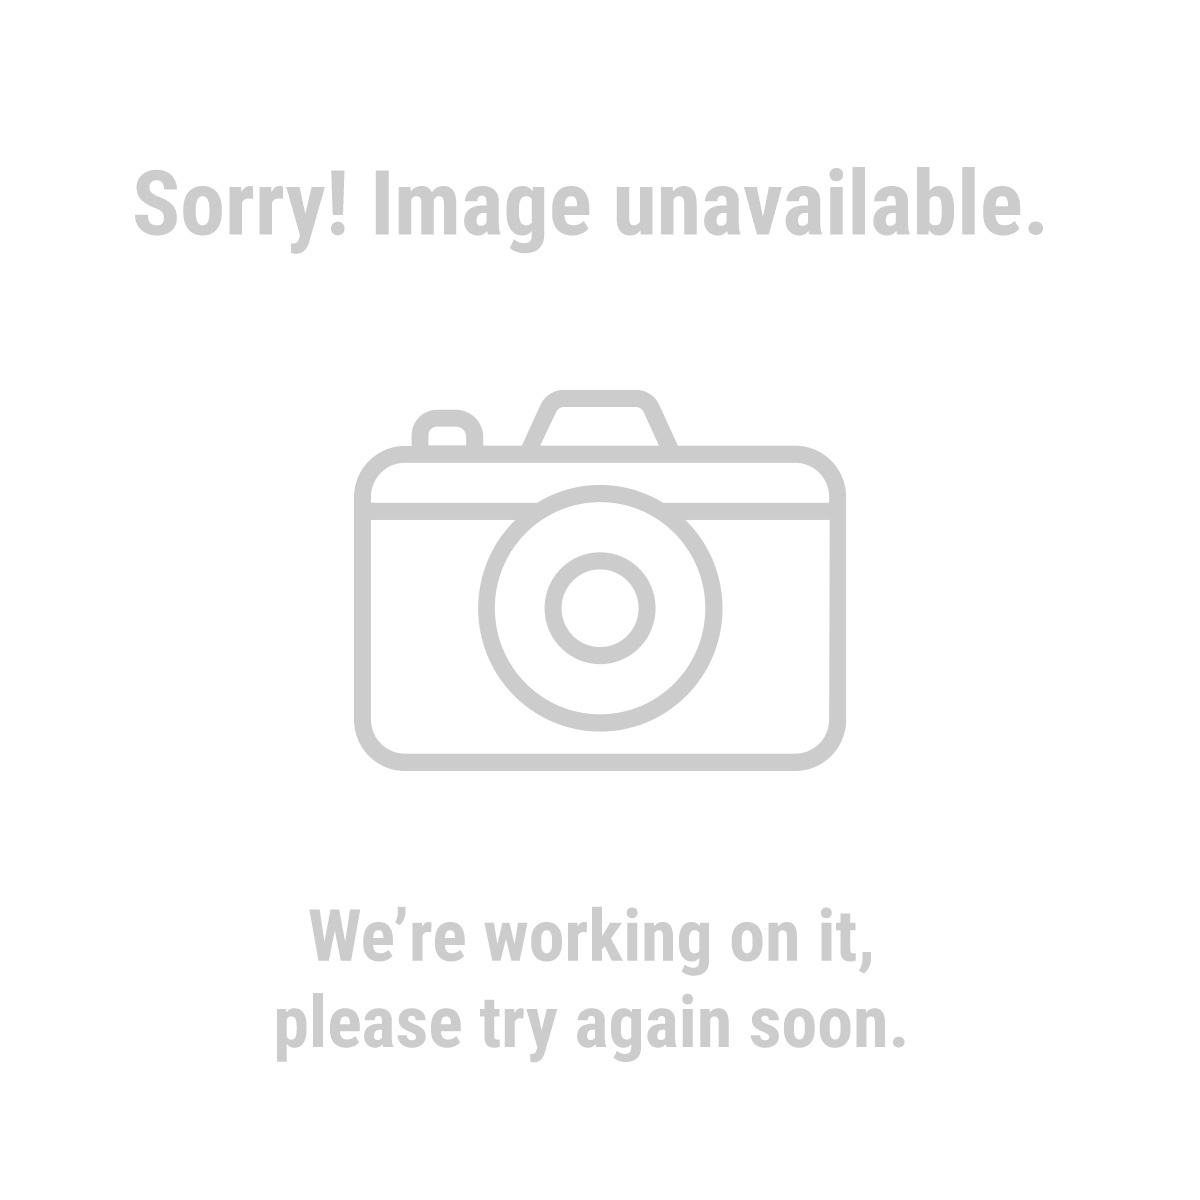 "Chicago Electric Welding Systems 69530 0.030"" ER70S-6 Carbon Steel Welding Wire, 10 Lb. Roll"